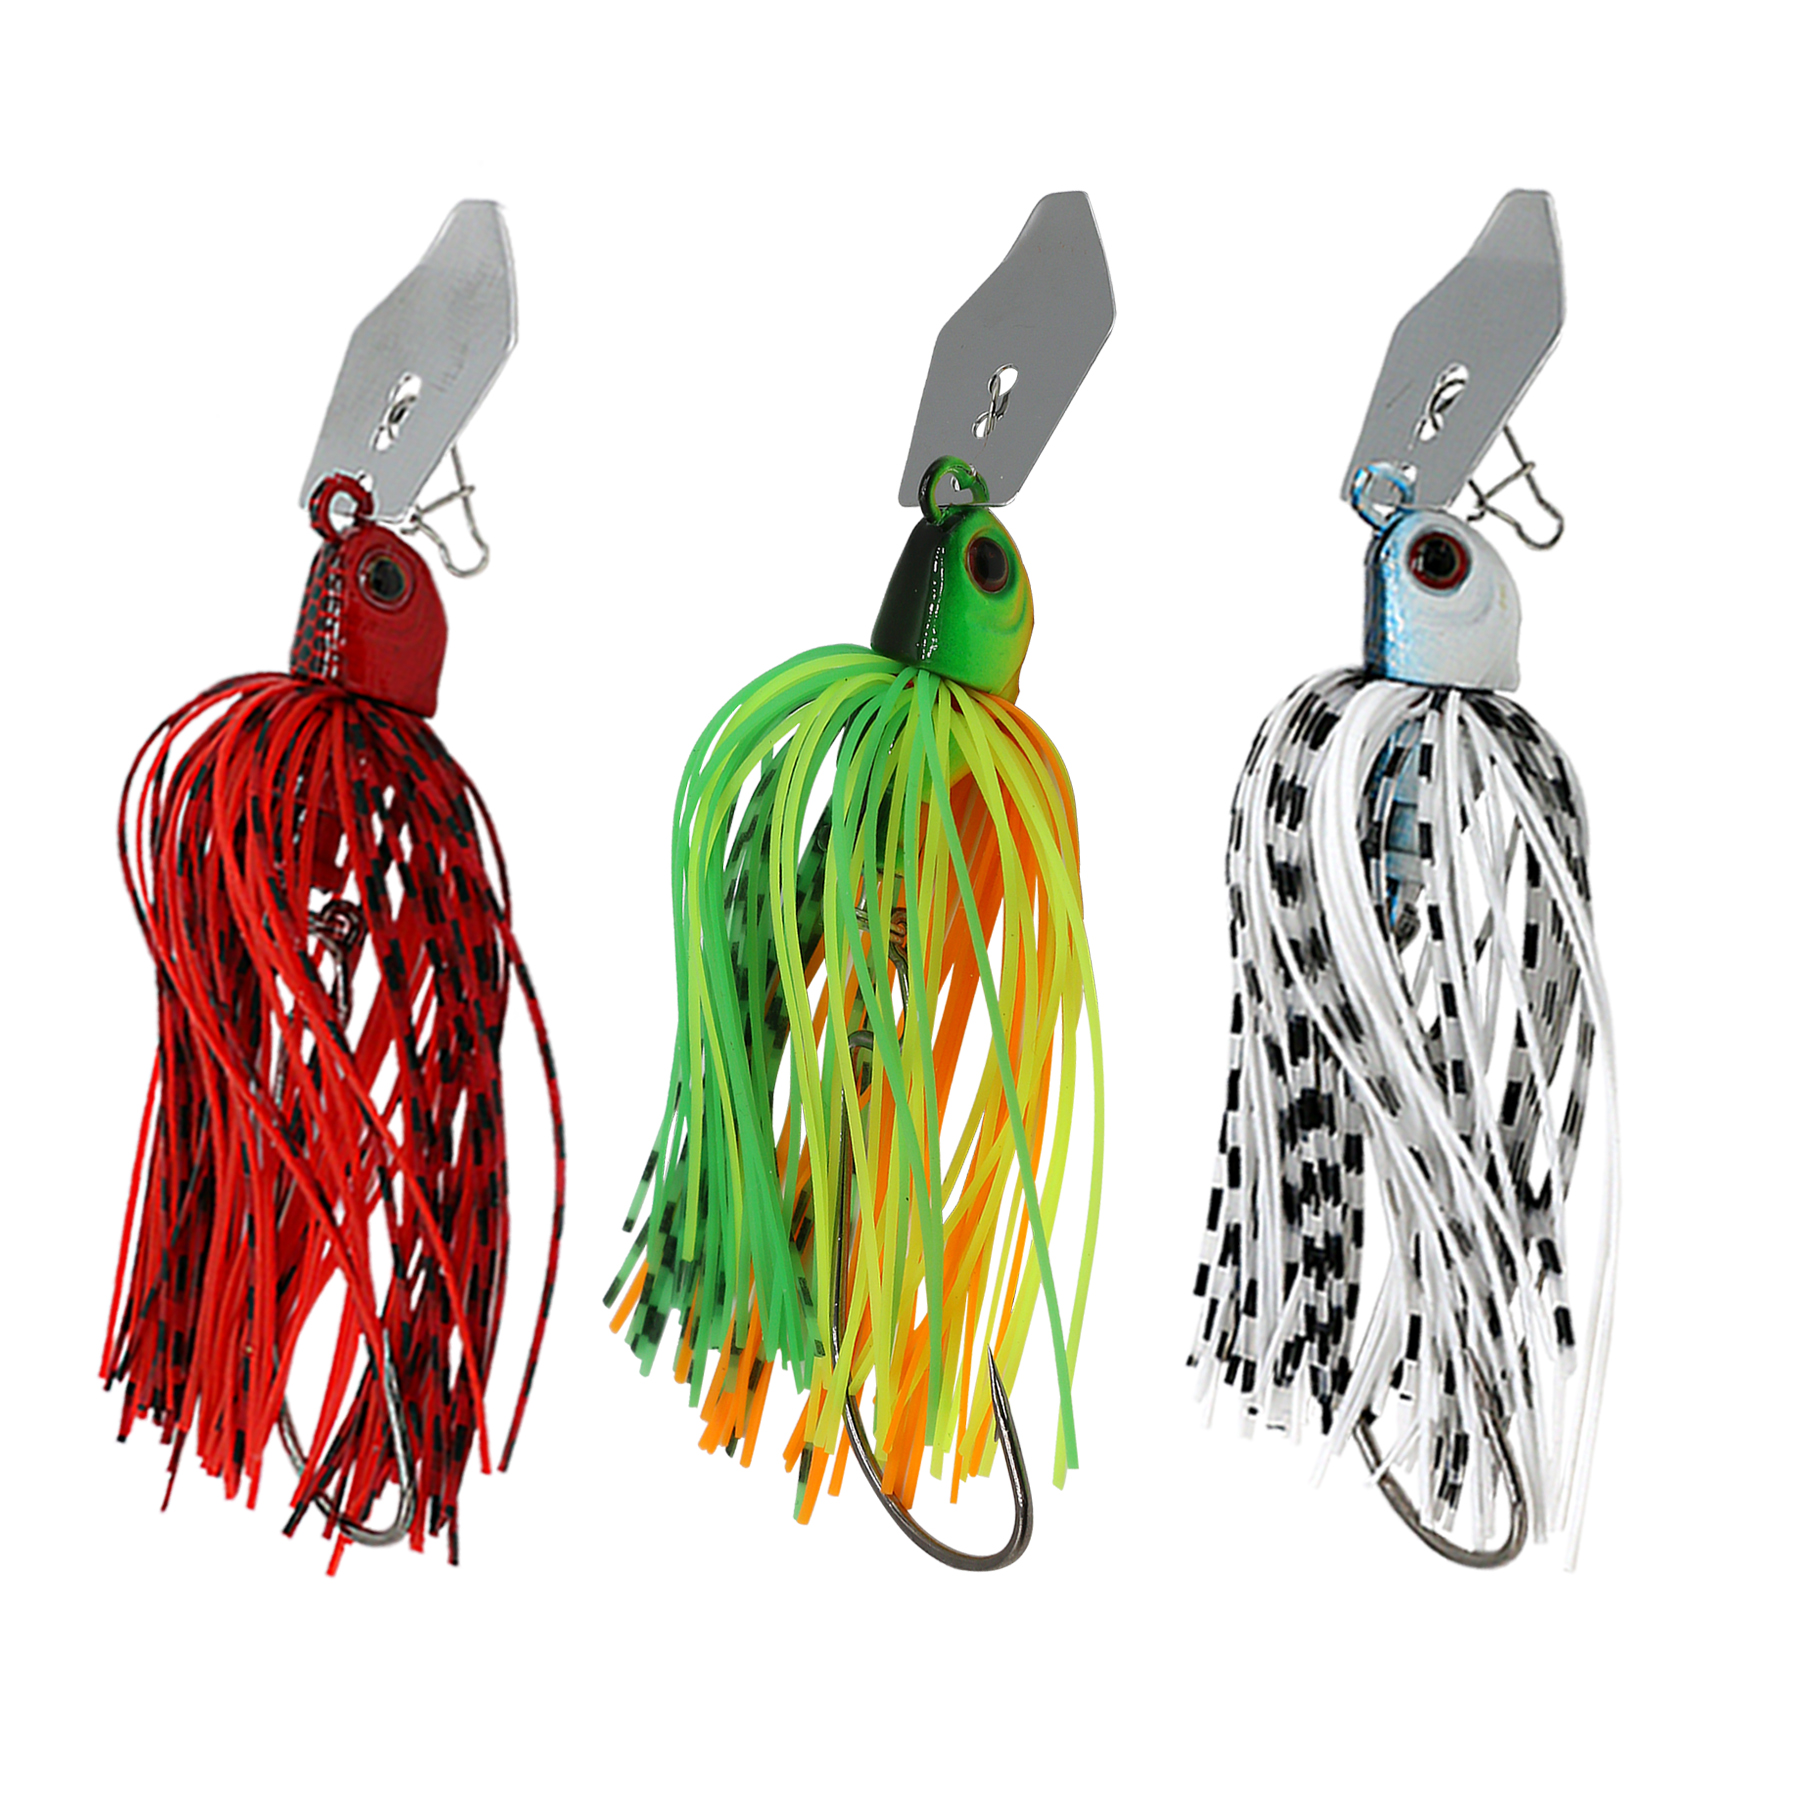 JonStar 2 Pcs/lot 16G Fishing Chatter Bait Spinner Spin Fishing Lure Buzzbait Chatterbait  For Bass Pike Walleye Fishing